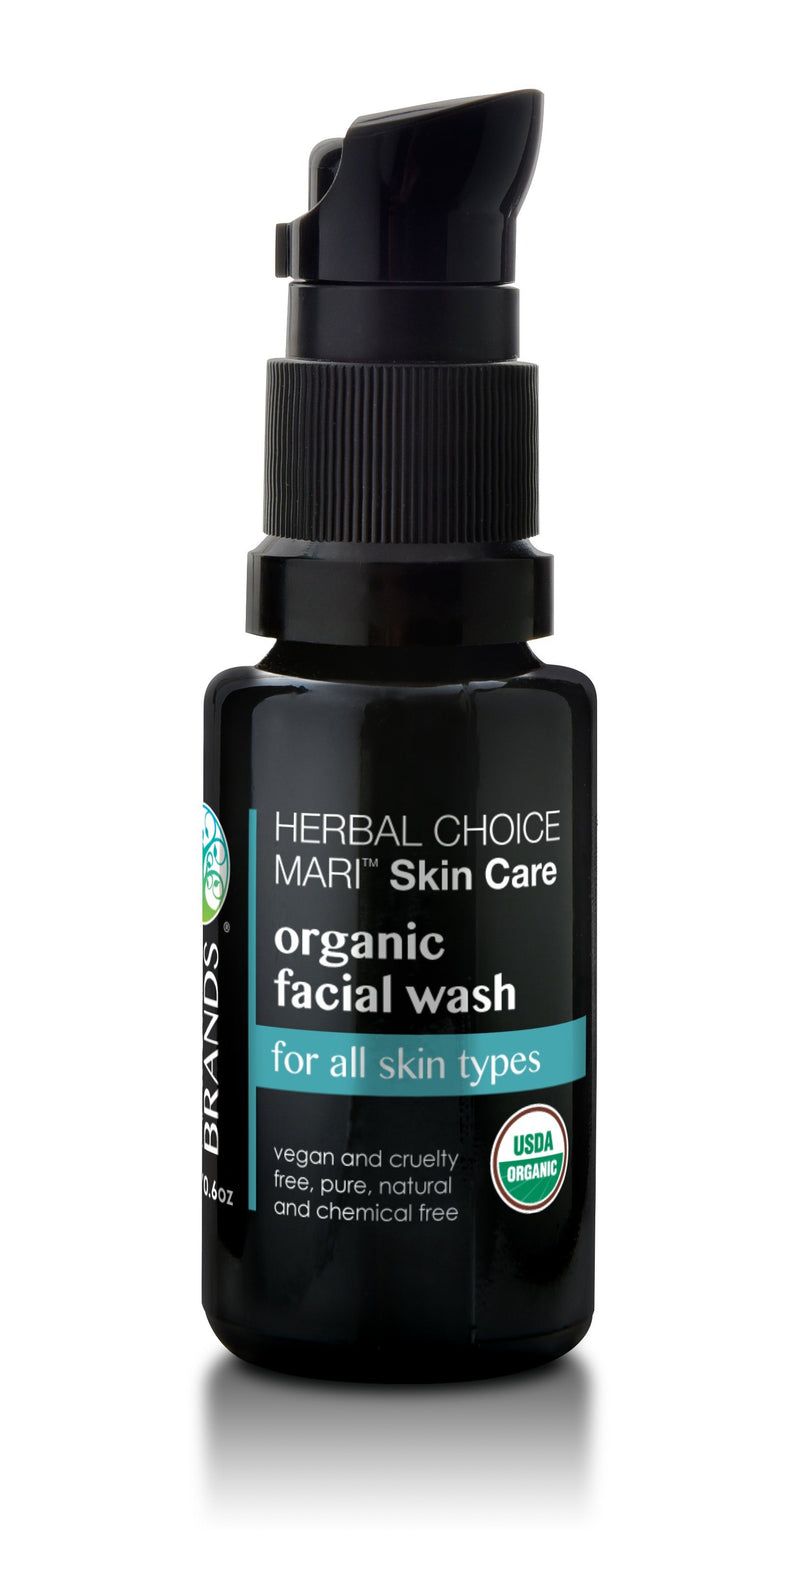 Herbal Choice Mari Organic Facial Wash, Moisturizing for All Skin Types - Herbal Choice Mari Organic Facial Wash, Moisturizing for All Skin Types - 0.5floz